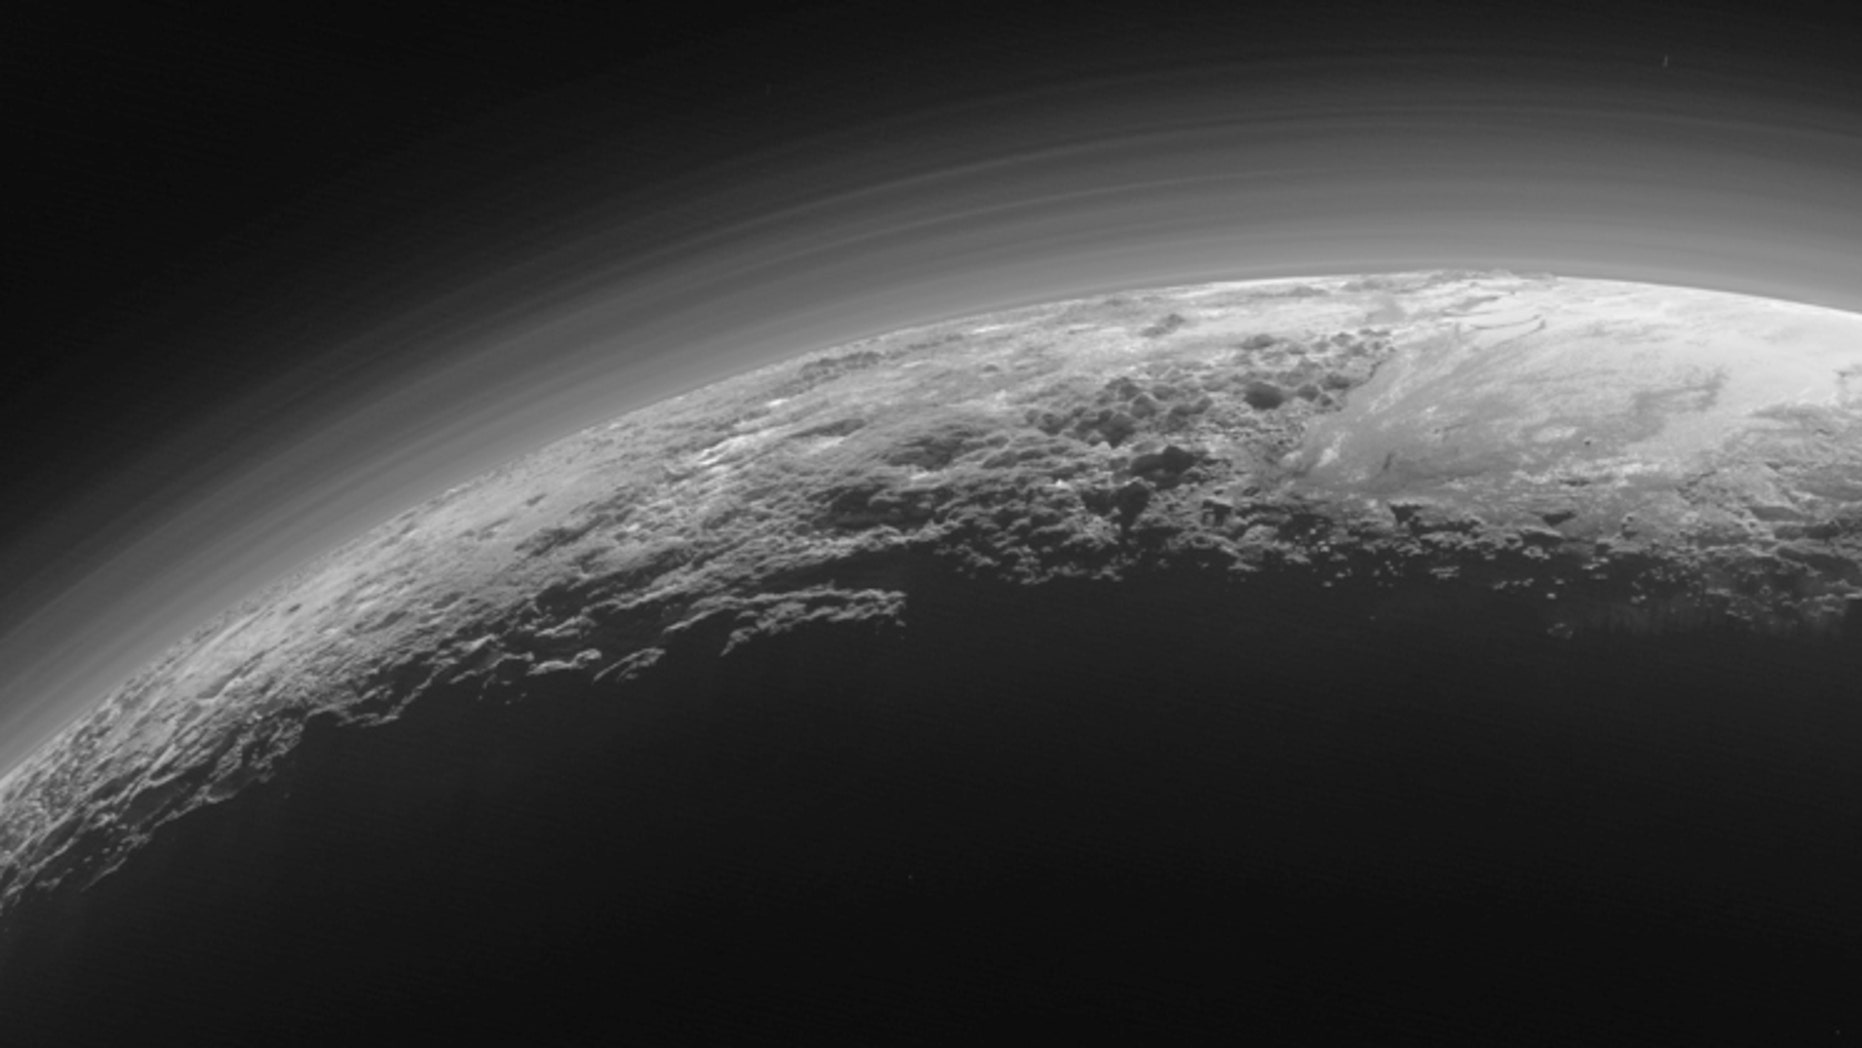 Just 15 minutes after its closest approach to Pluto on July 14, 2015, NASA's New Horizons spacecraft looked back toward the sun and captured this near-sunset view of the rugged, icy mountains and flat ice plains extending to Pluto's horizon.